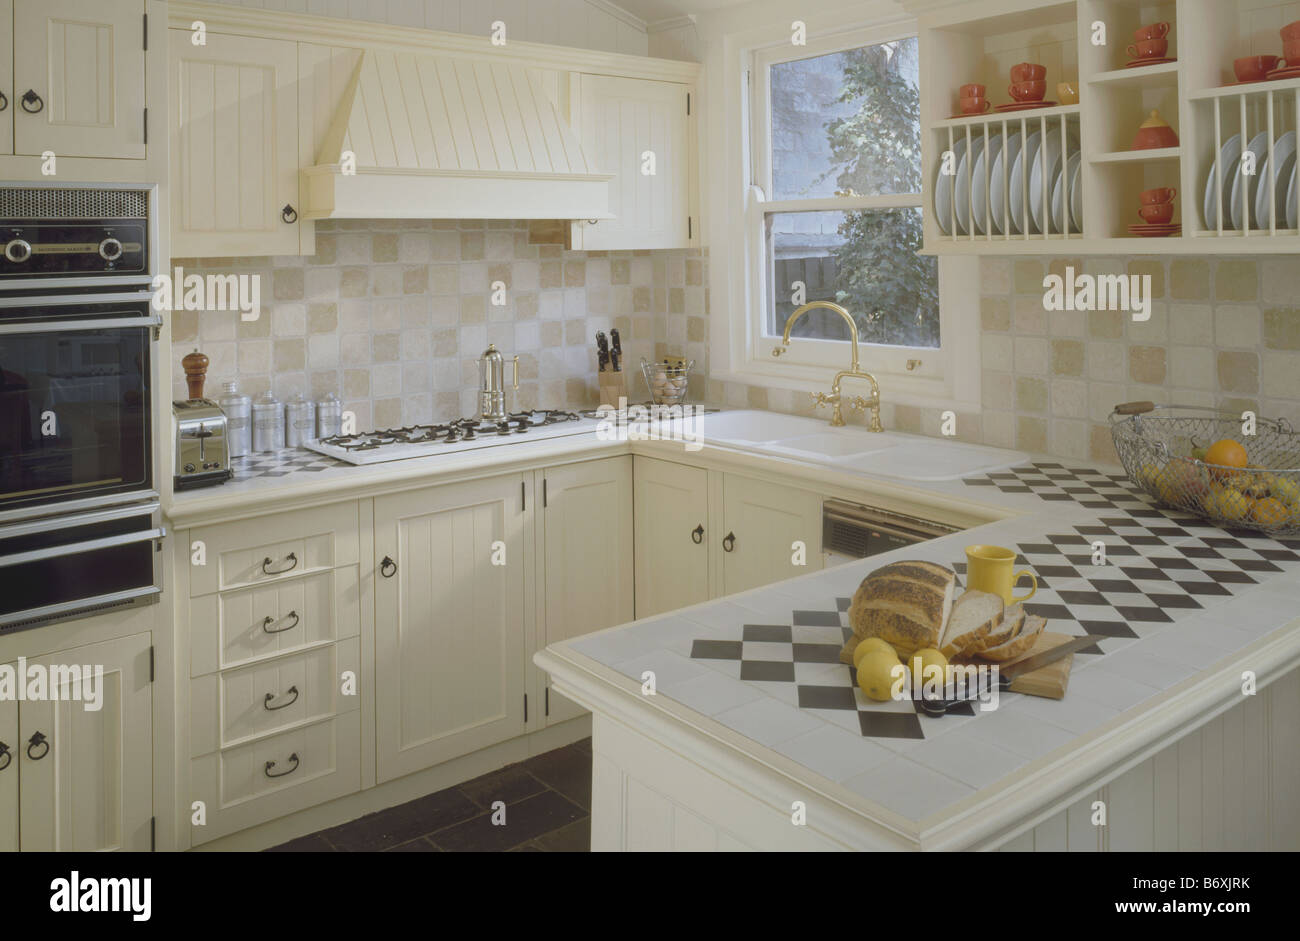 Kleine Küche Halbinsel Small Country Kitchens Domestic Stockfotos And Small Country